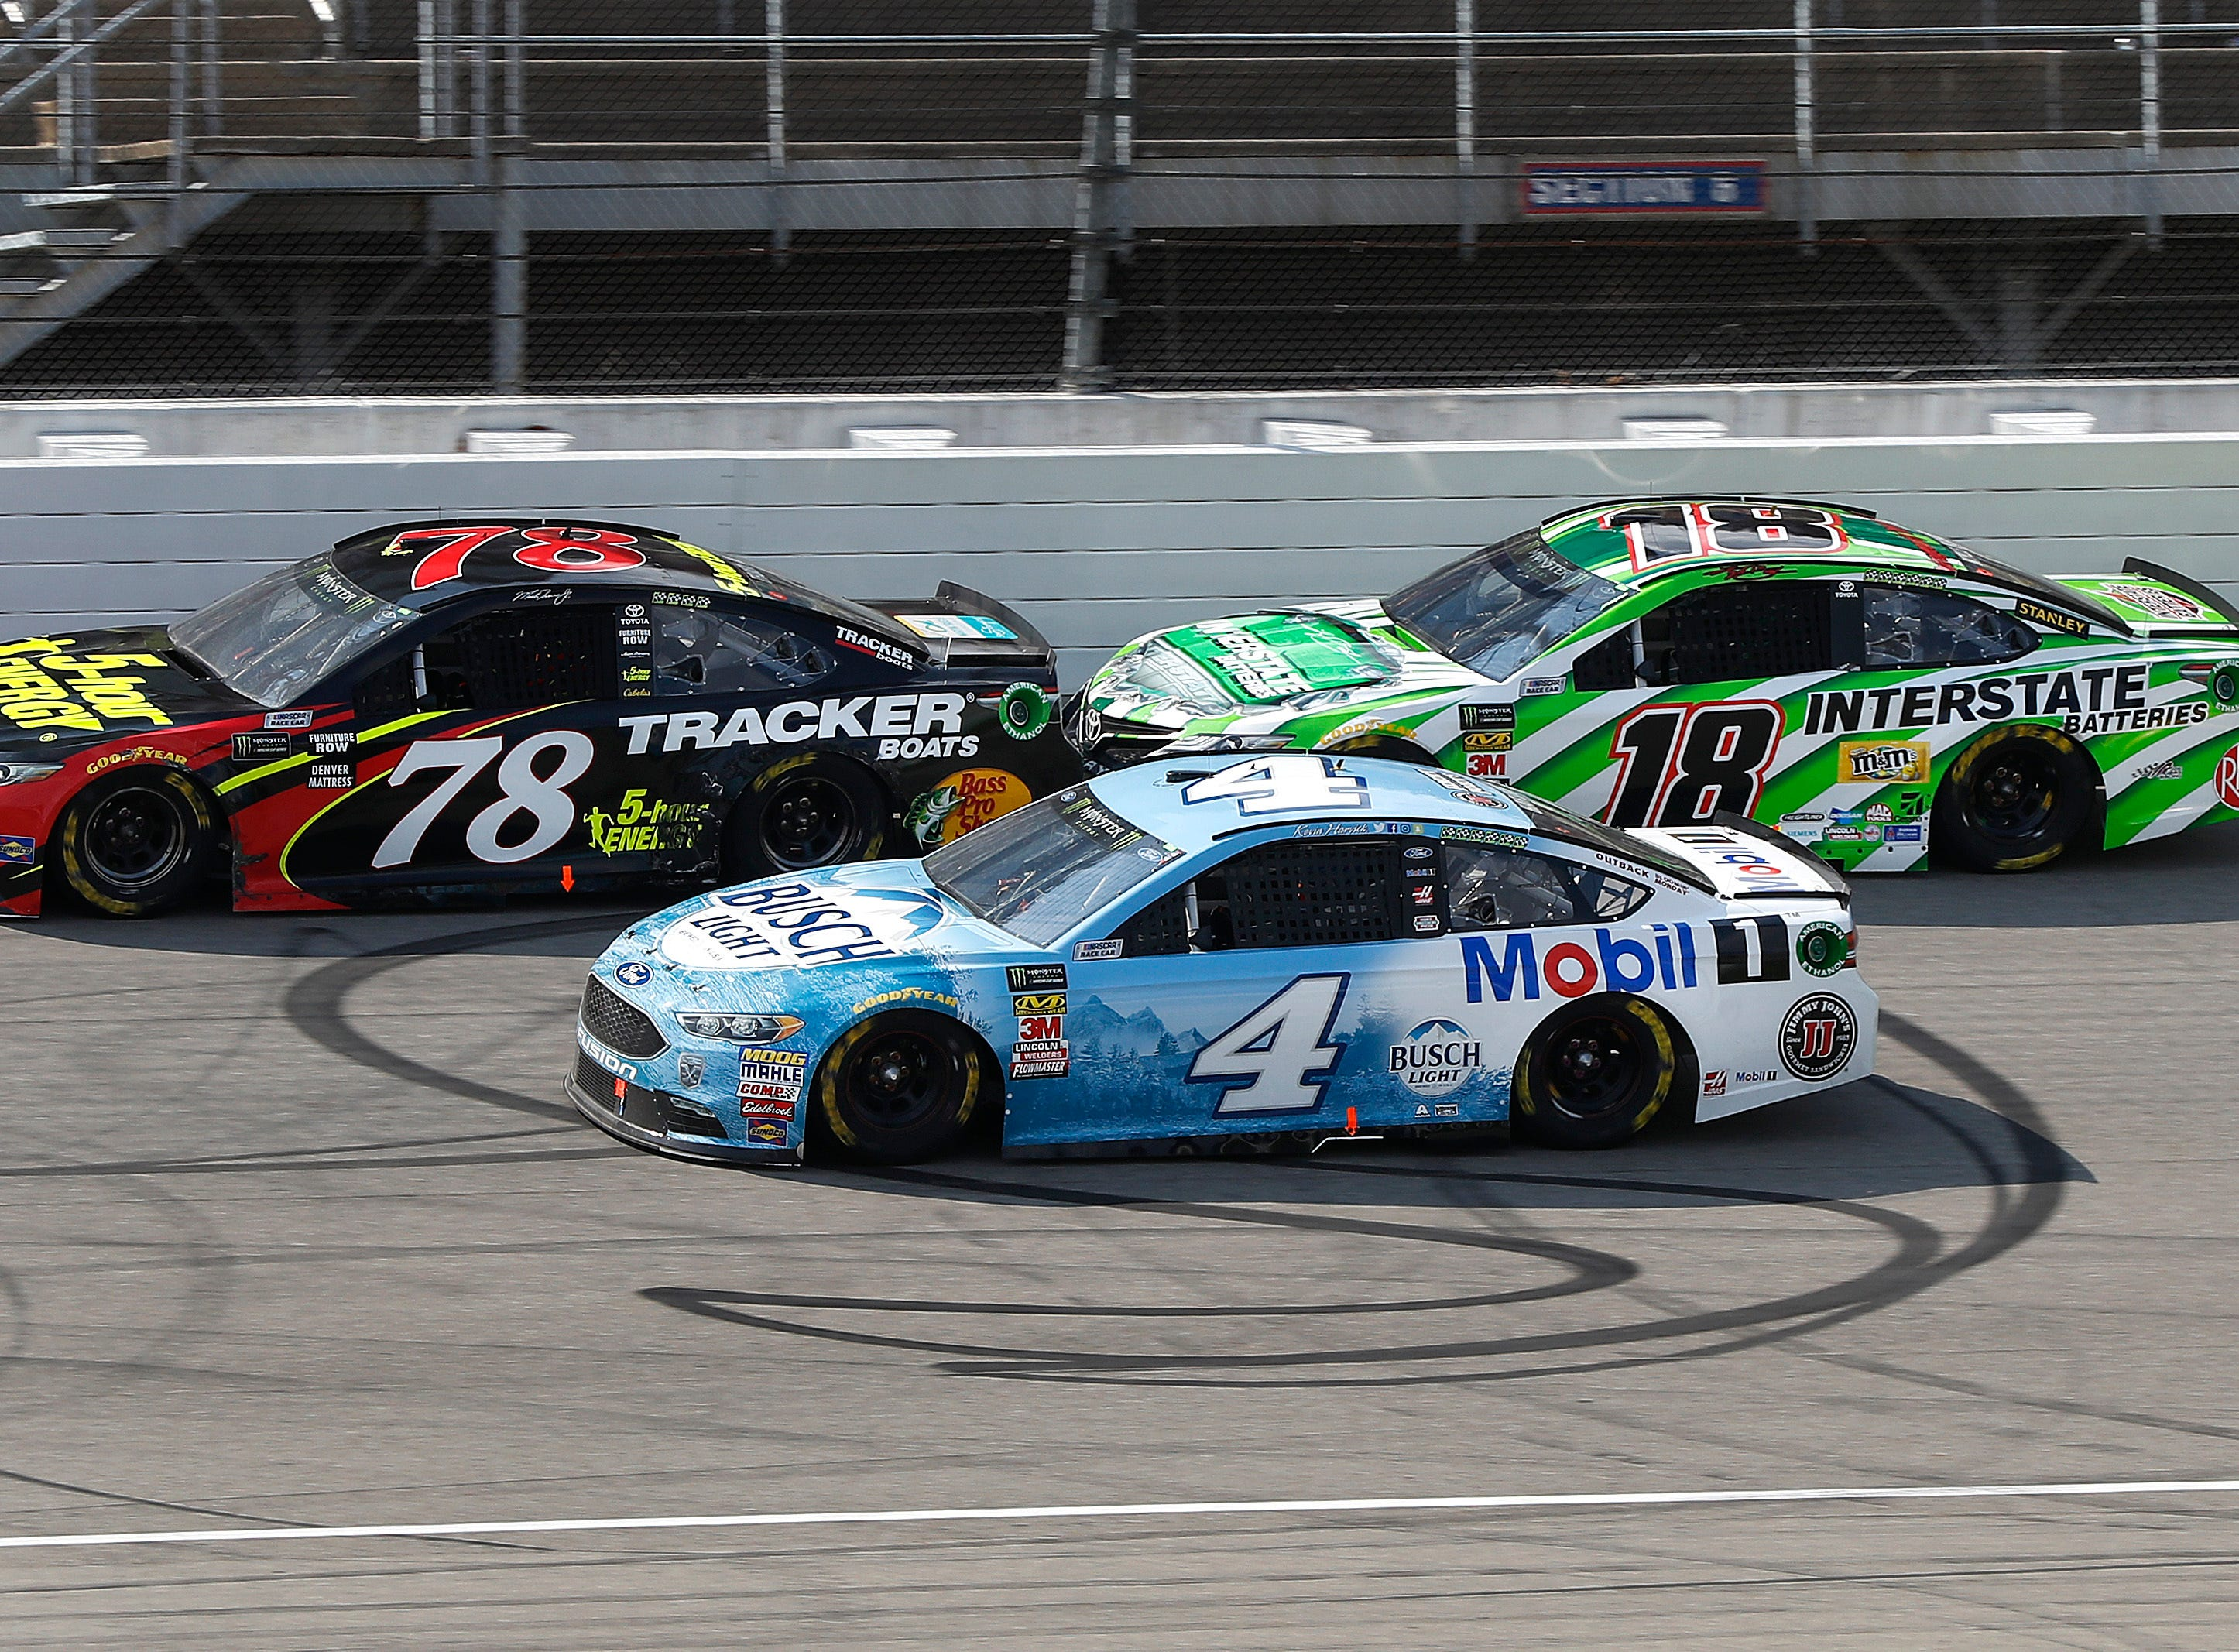 Martin Truex Jr. (78), Kevin Harvick (4) and Kyle Busch (18) race each other for position during a NASCAR Cup Series auto race at Michigan International Speedway in Brooklyn, Mich., Sunday, Aug. 12, 2018.